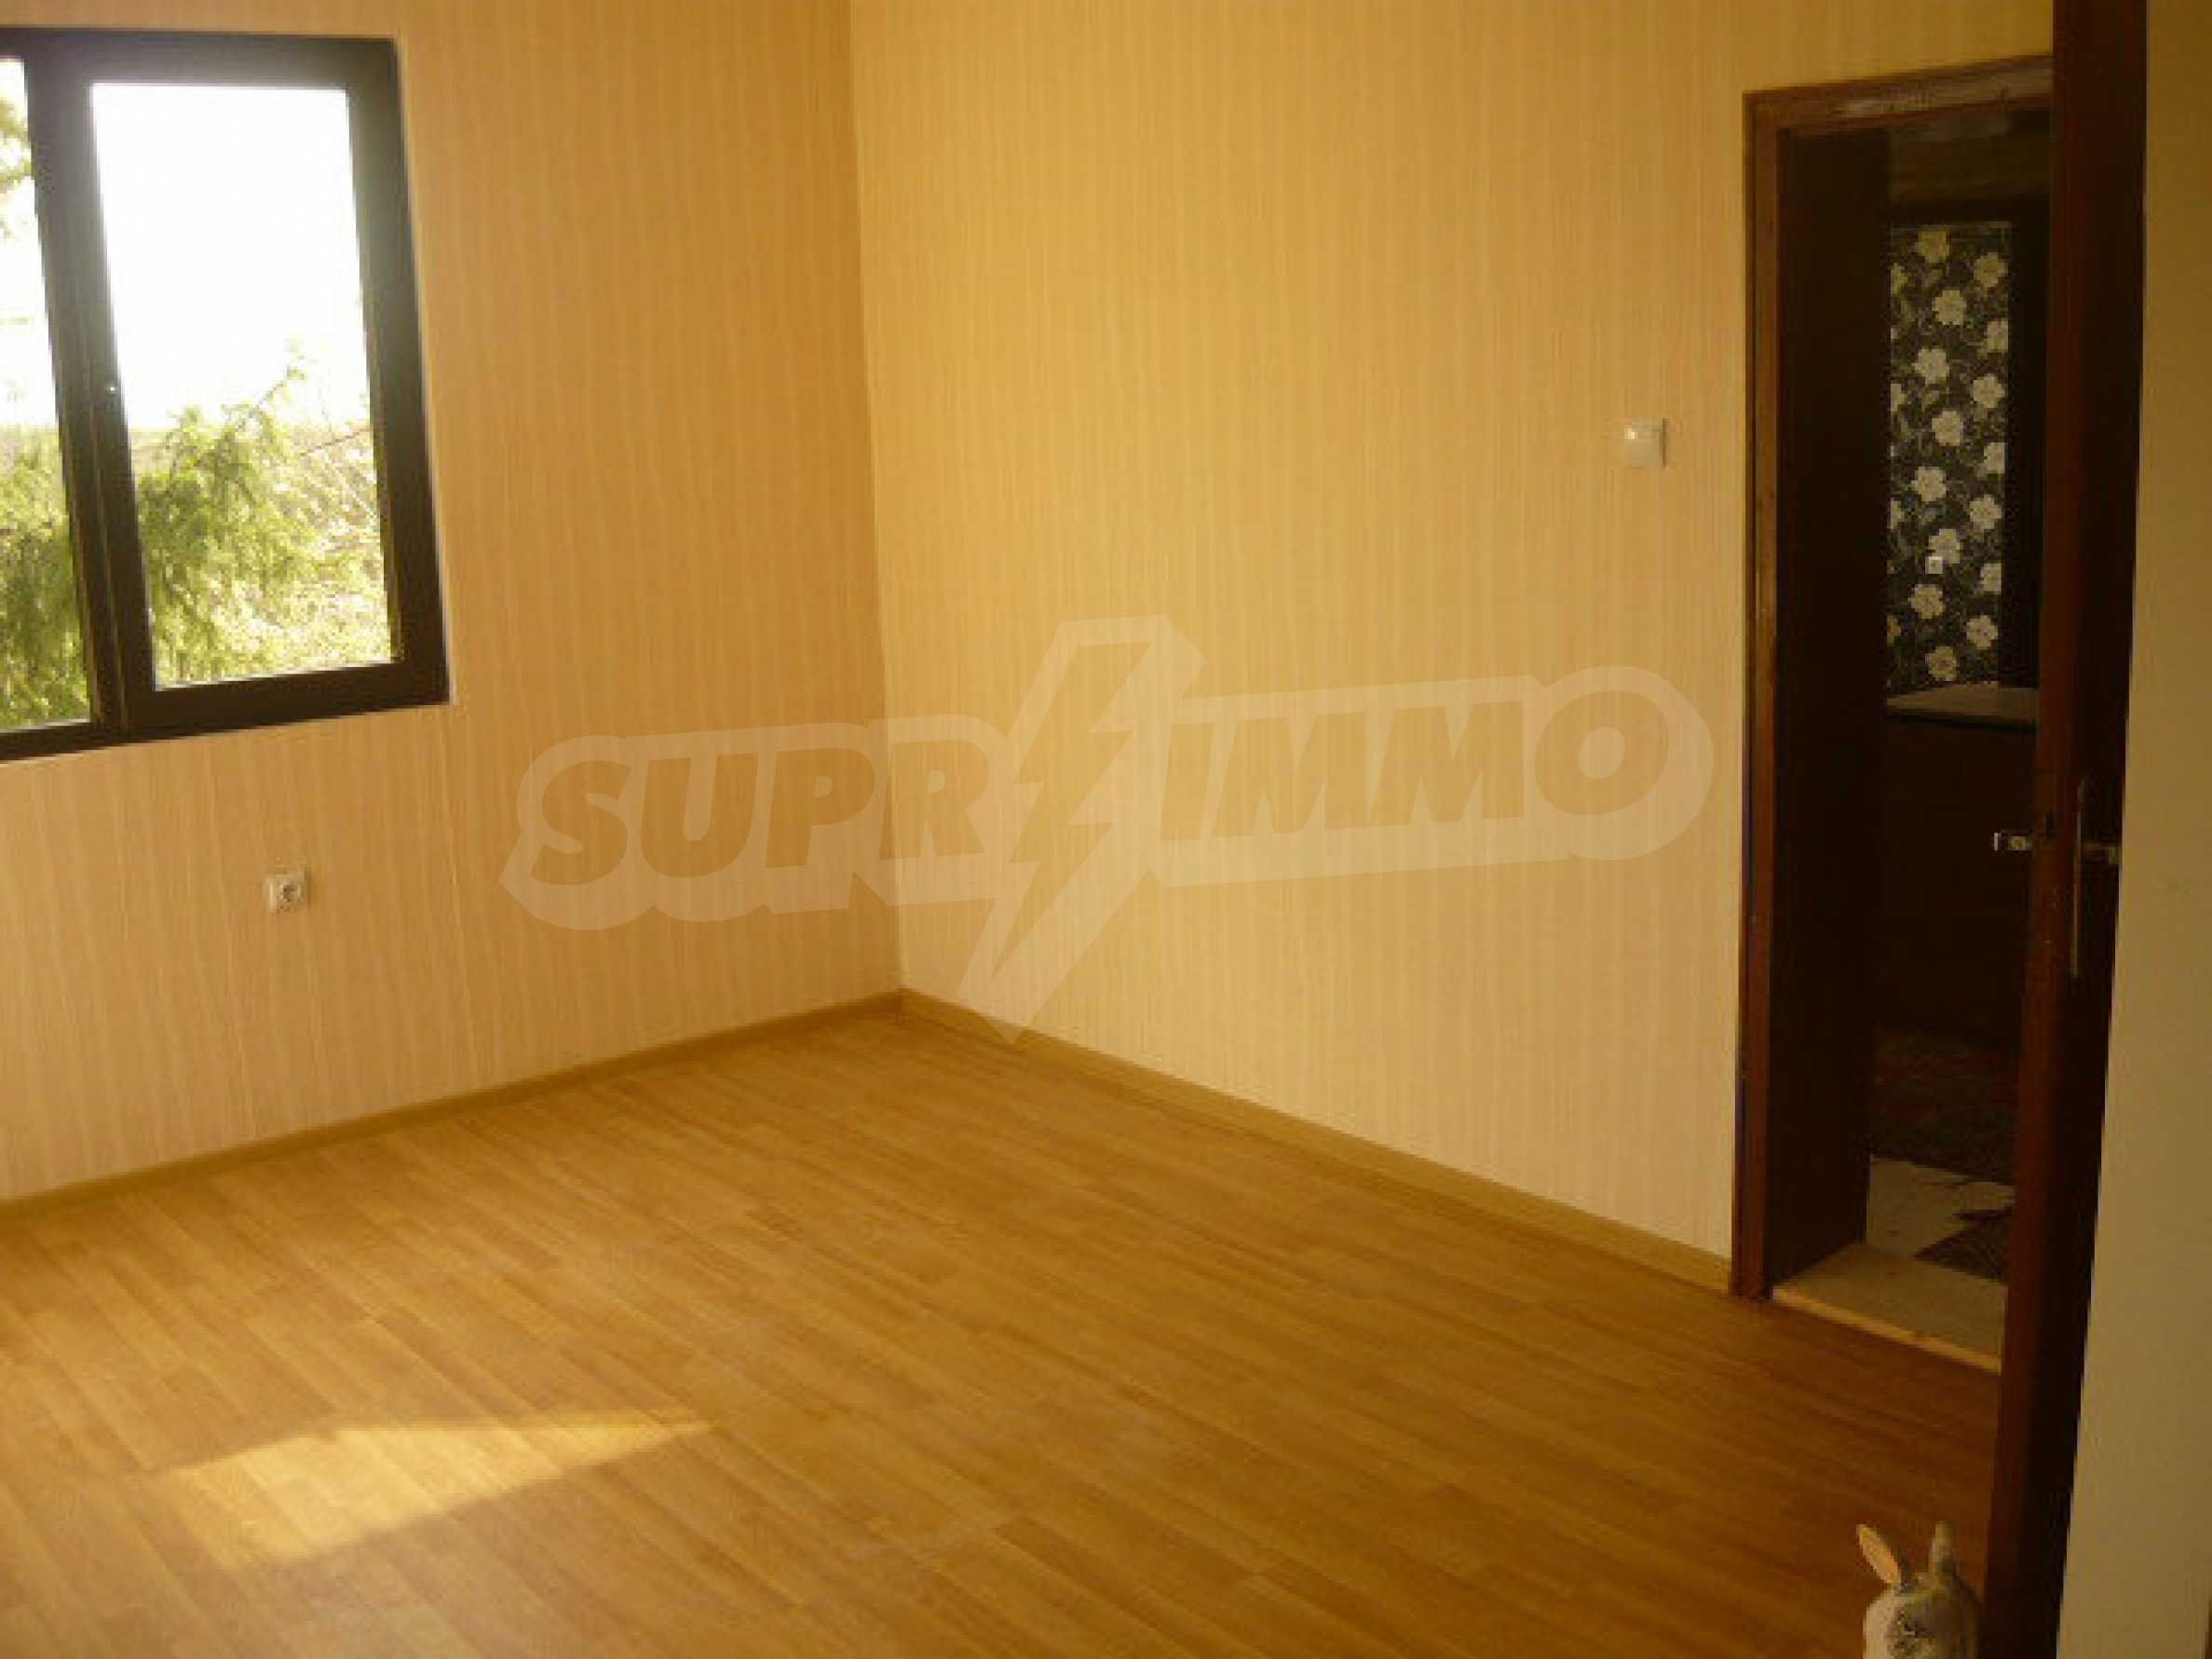 Two-storey house in a village located 3 km. from Veliko Tarnovo 4